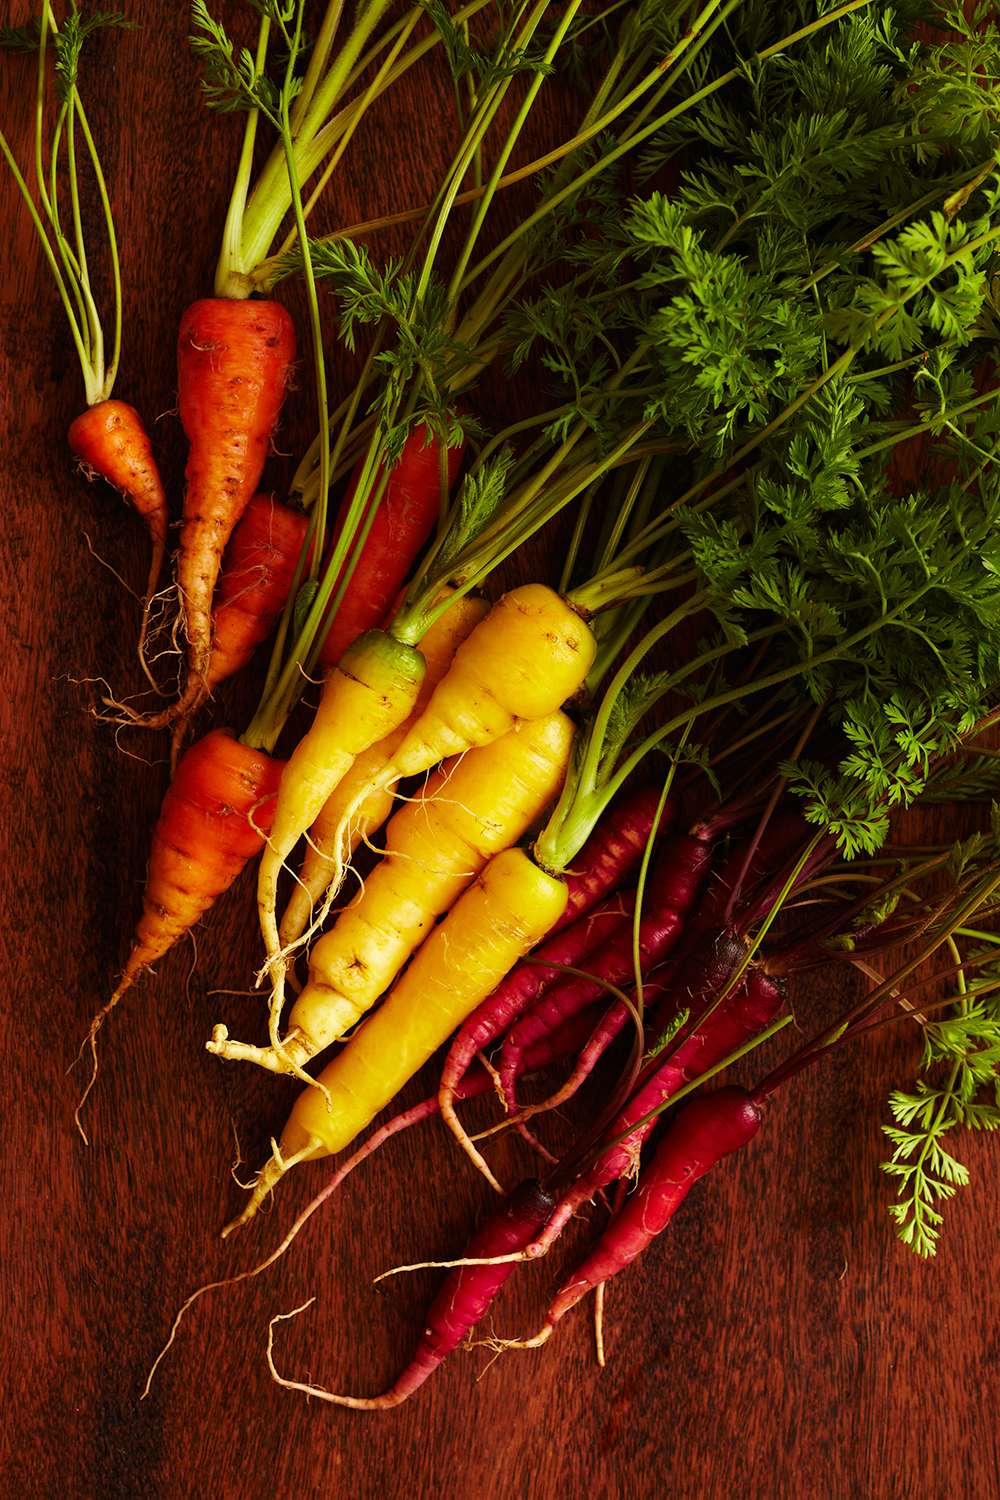 09_SaladBook_Carrots_0014_original.jpg